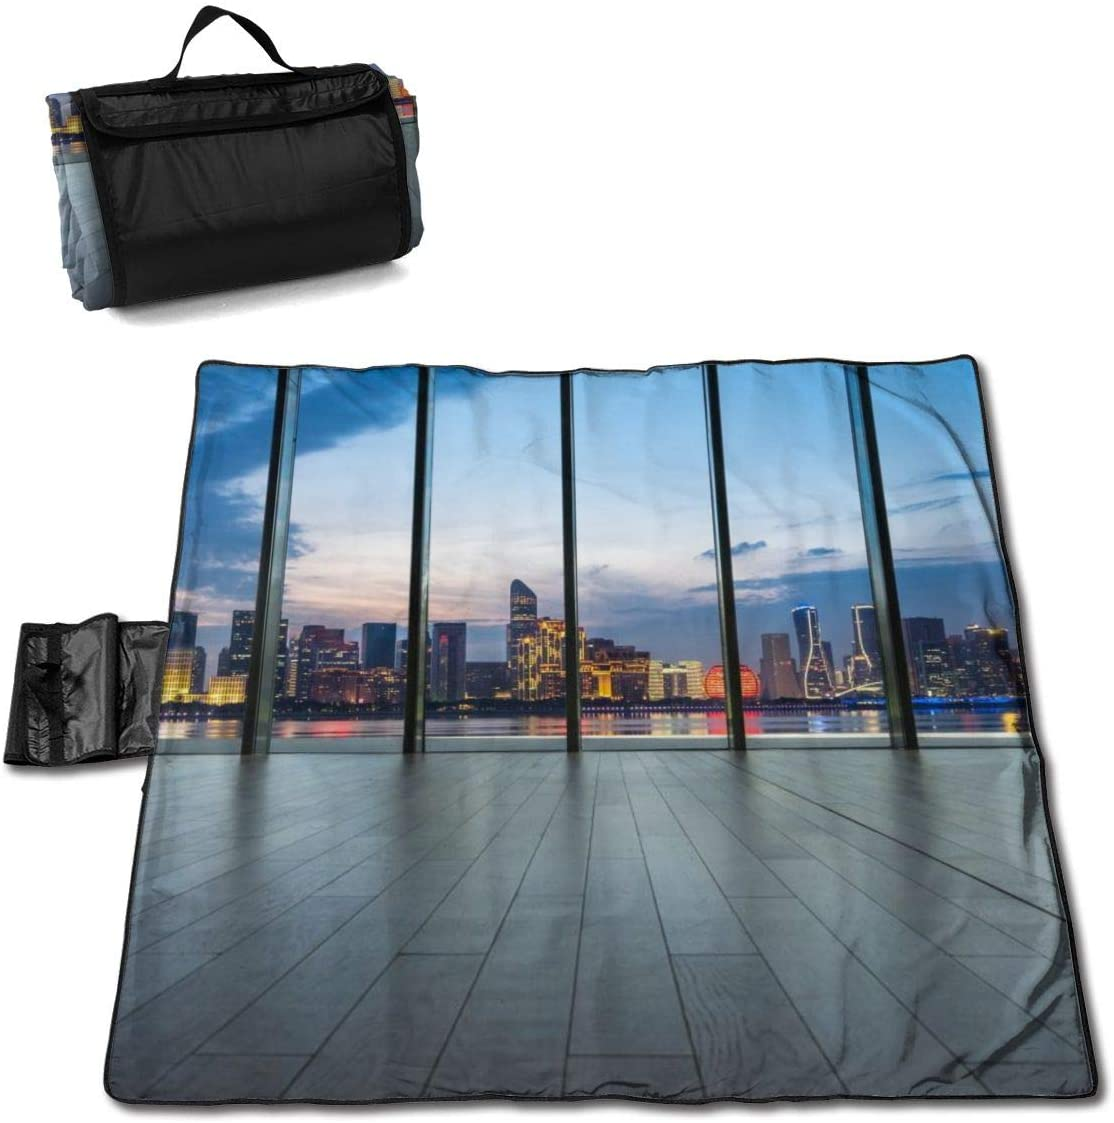 DPBEST Interior of Office Building with City Skyline Picnic Blanket with Handcarry Waterproof Foldable Picnic Mat for Camping Beach Park Lawn